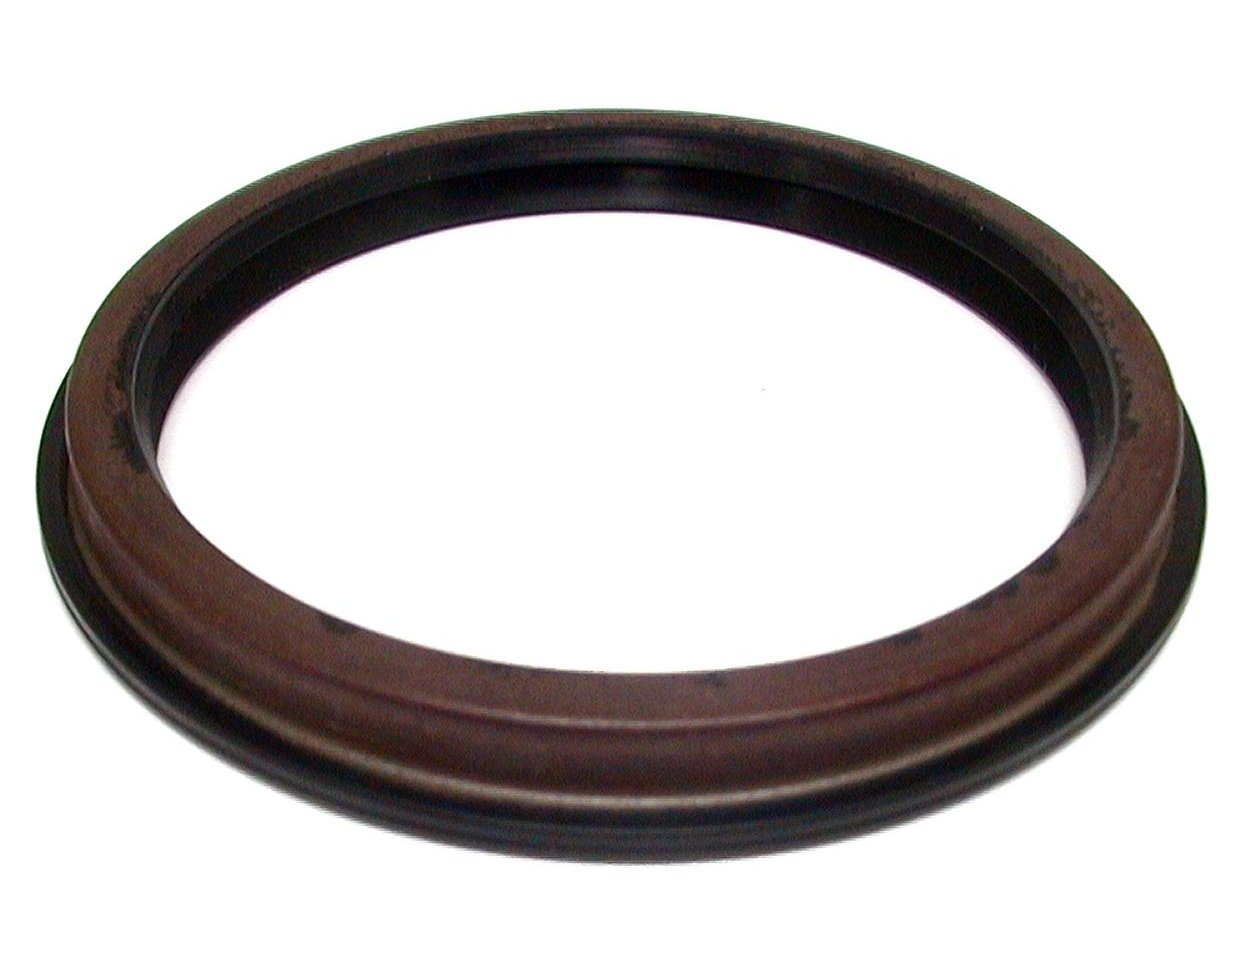 National Parts and Abrasives Replaces Front Wheel Seal K1500-4WD 8.25 R.G. (1988 Up) by National Parts and Abrasives (Image #1)